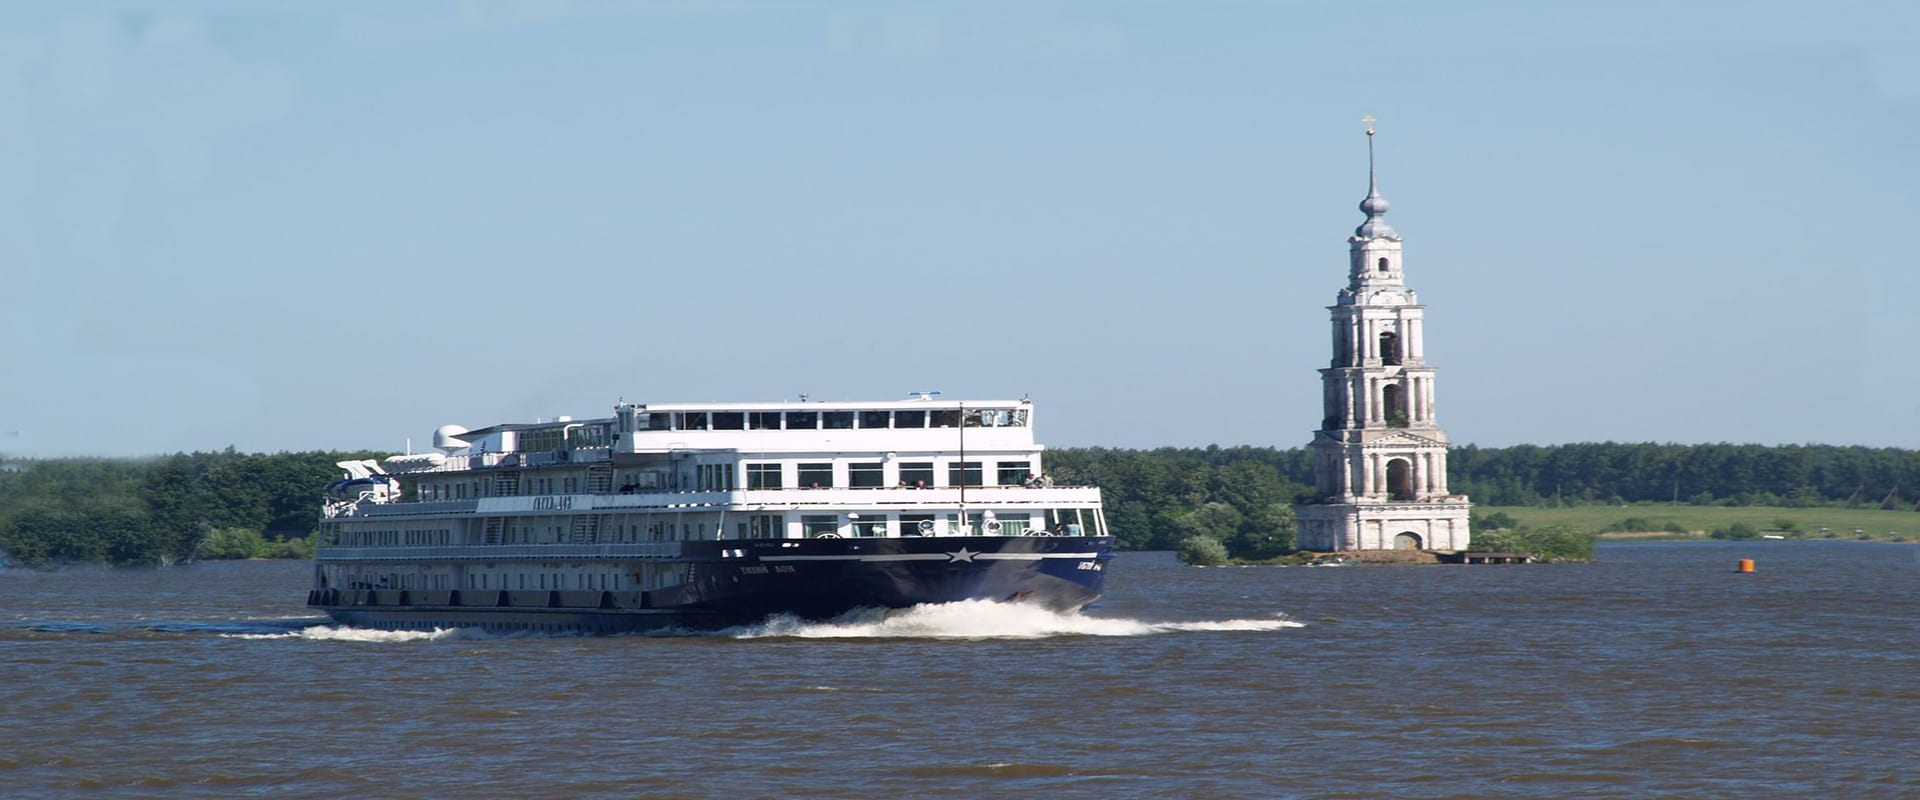 CRUZEIRO IMPERIAL RIVER CRUISES SÃO PETERSBURGO – MOSCOU A BORDO DO TIKHI DON